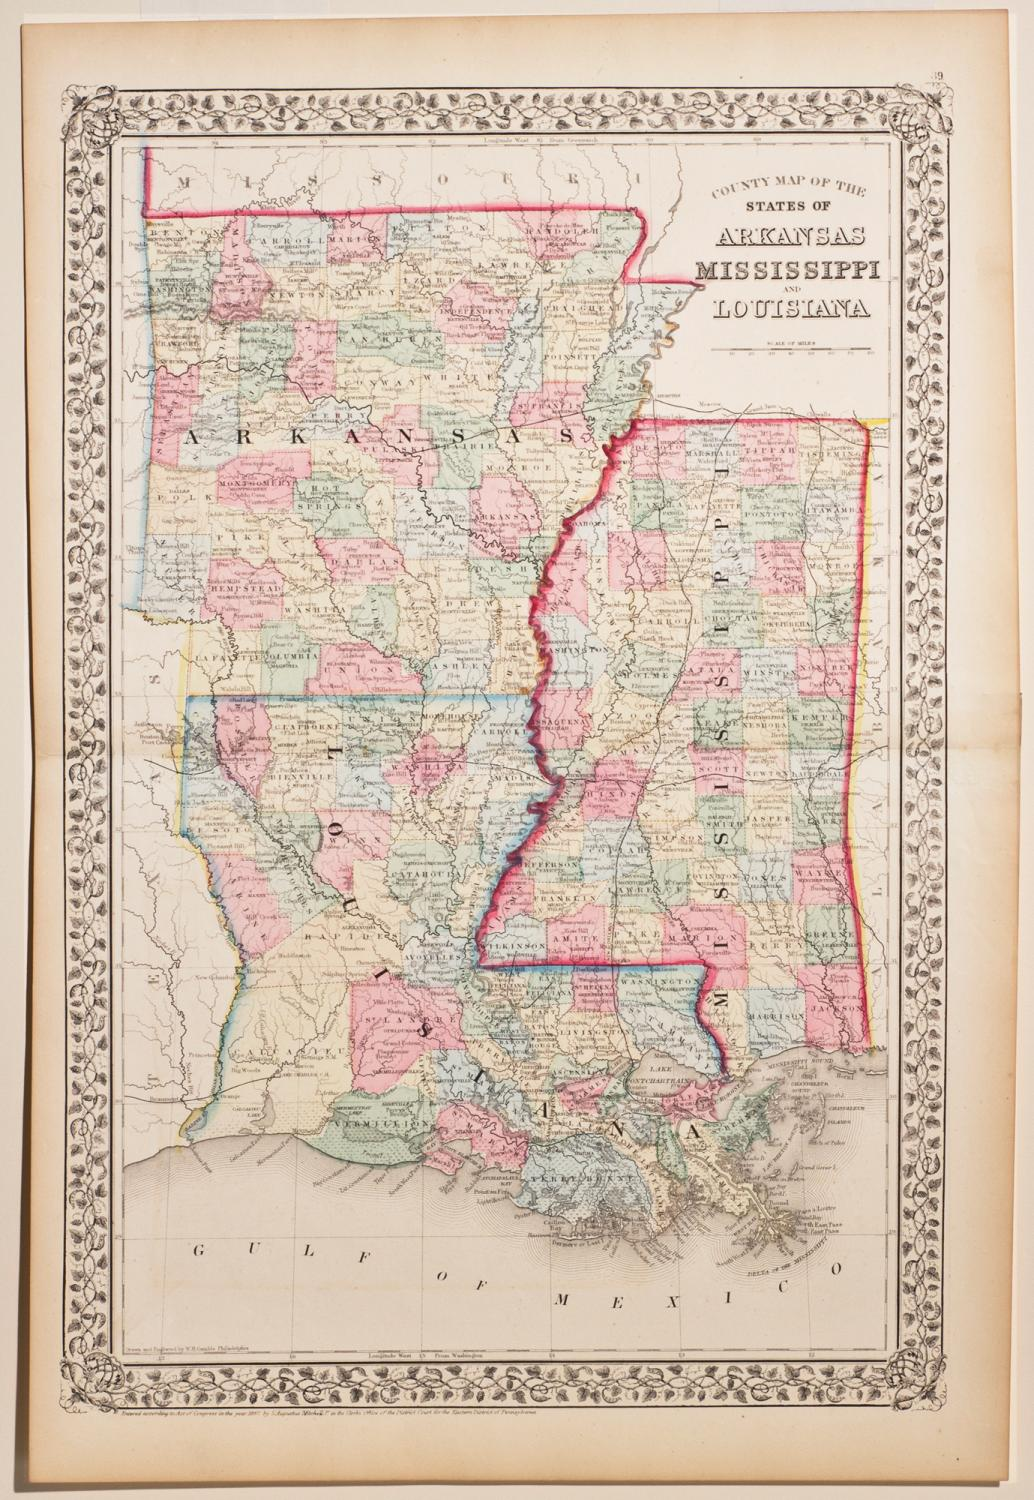 Mississippi And Louisiana Map.County Map Of The State Of Arkansas Mississippi Louisiana By S